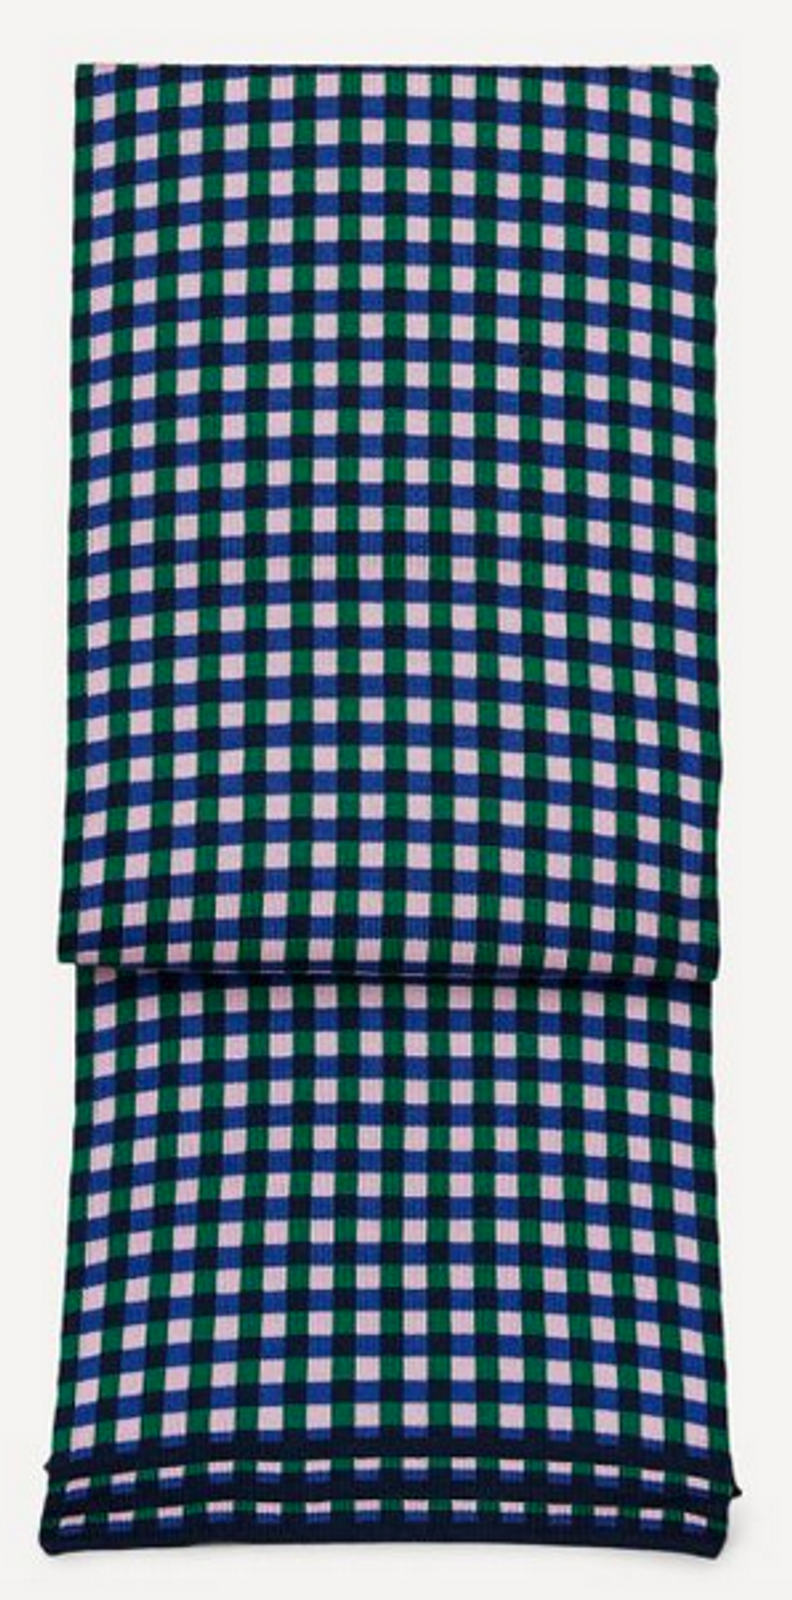 Oleana Gingham Graph Scarf, 556-W Blueberry Green